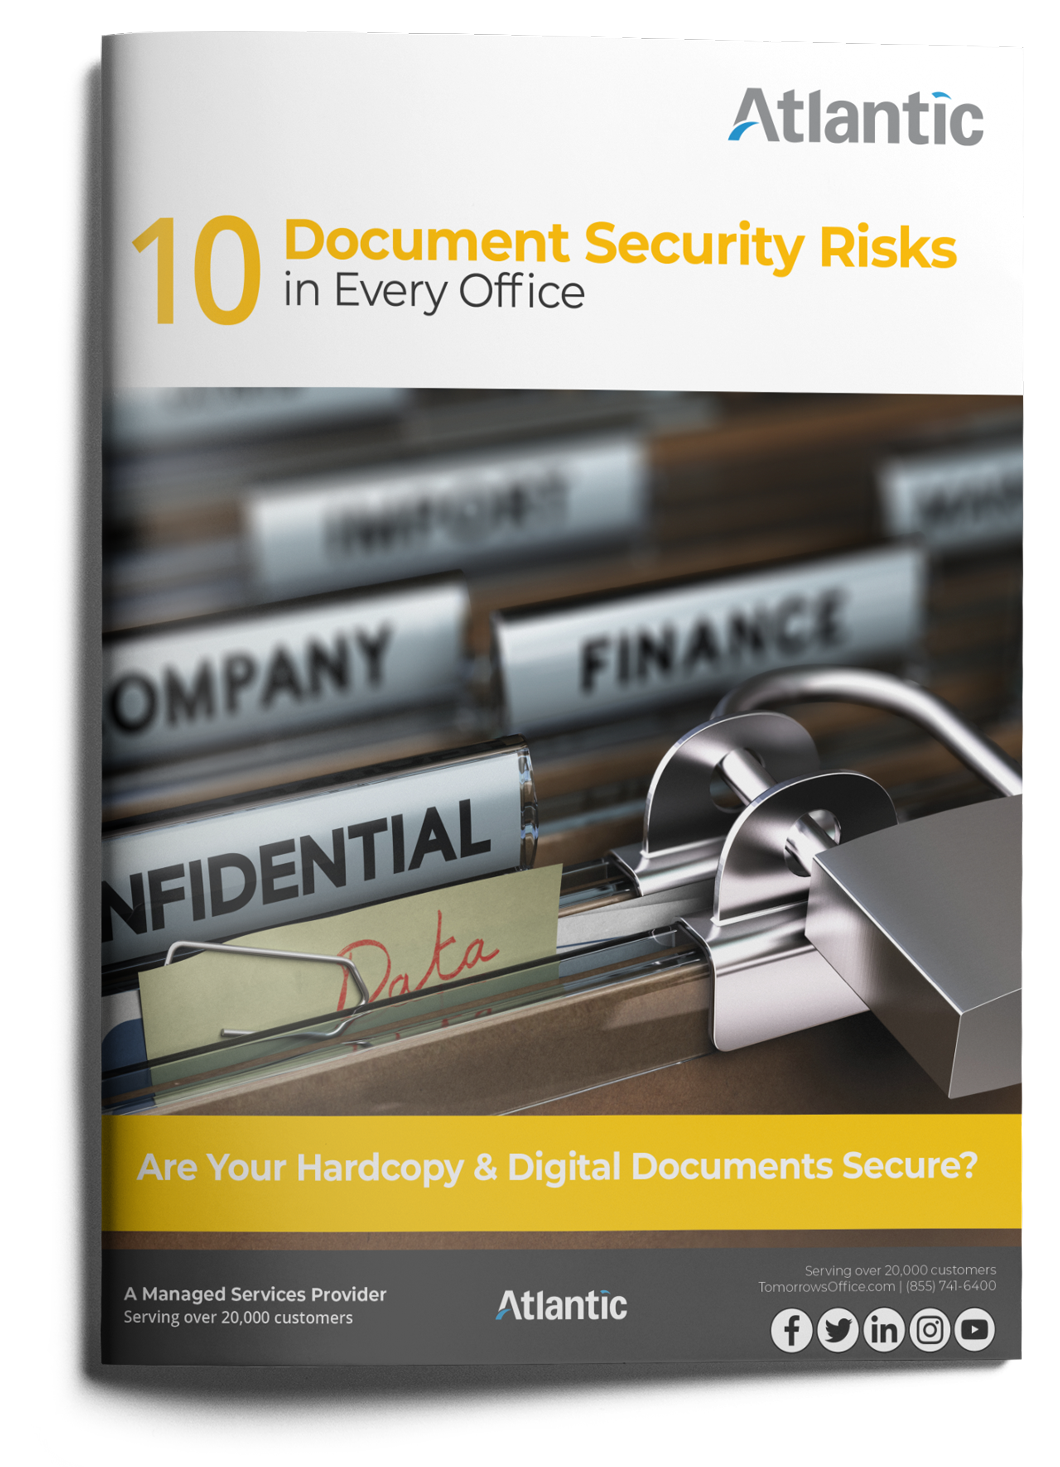 10 document security risks in every office ebook cover with text. Are your hardcopy and digital documents secure?